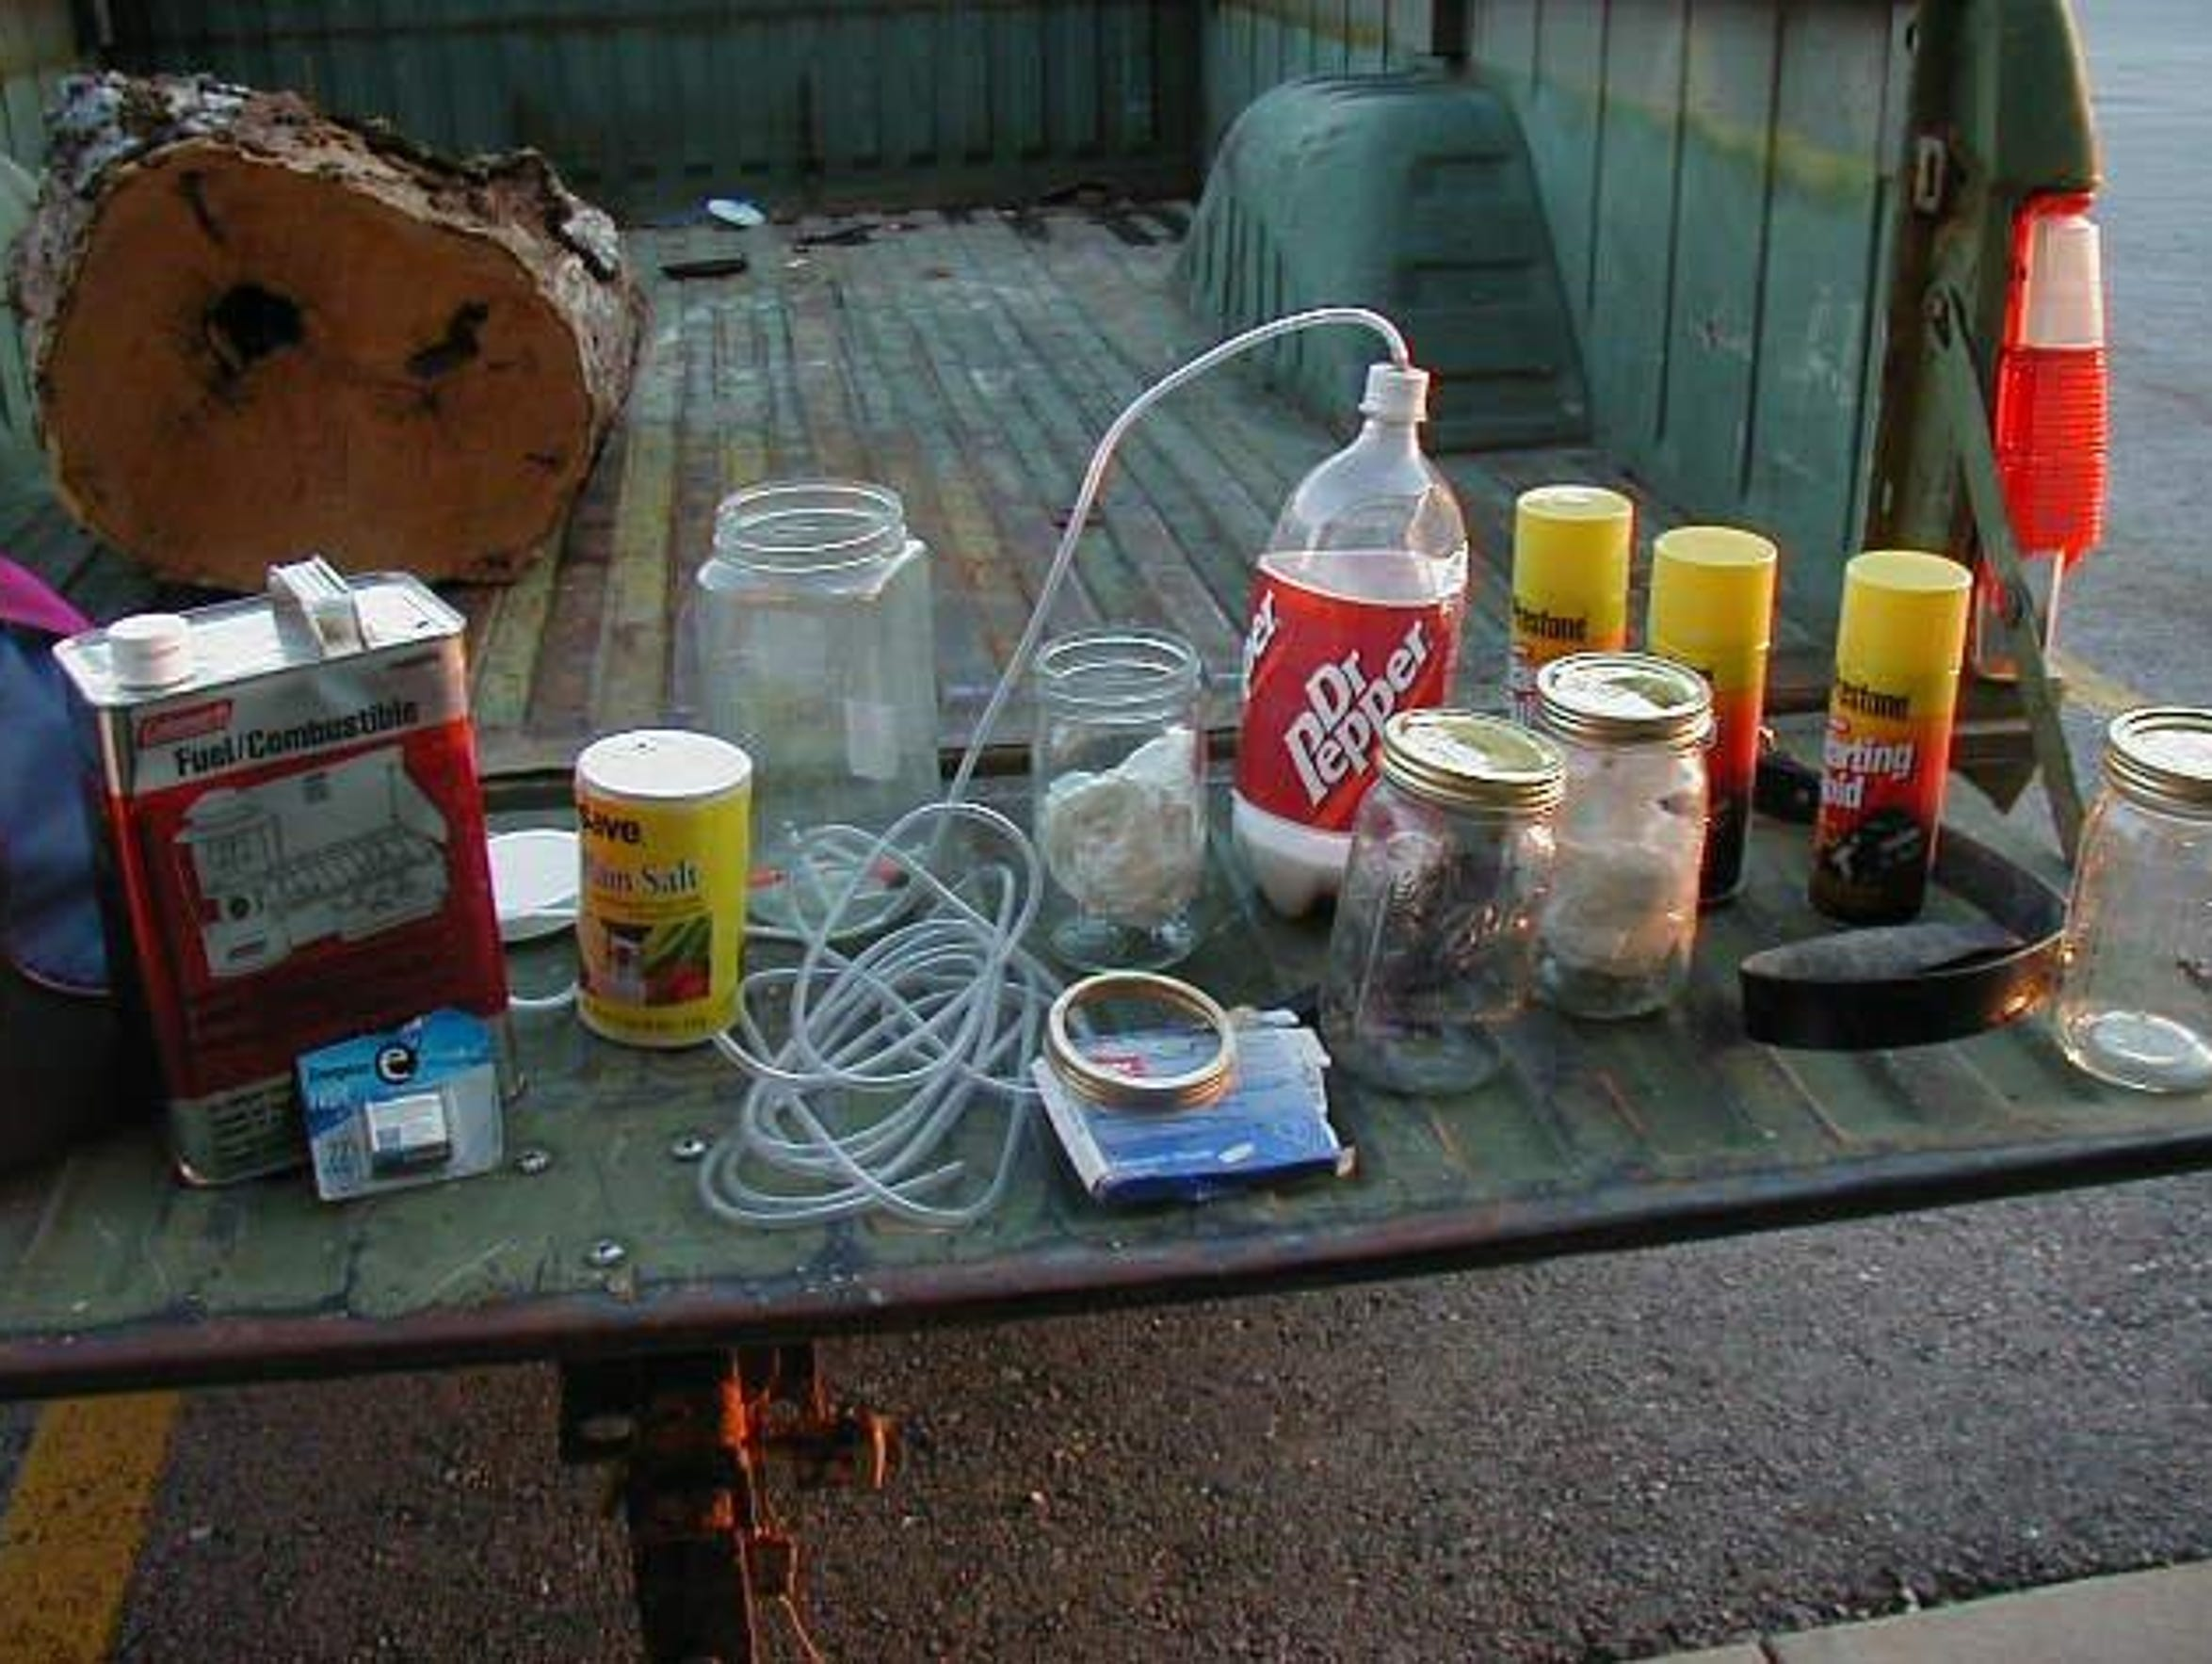 Methamphetamine manufacturing materials confiscated